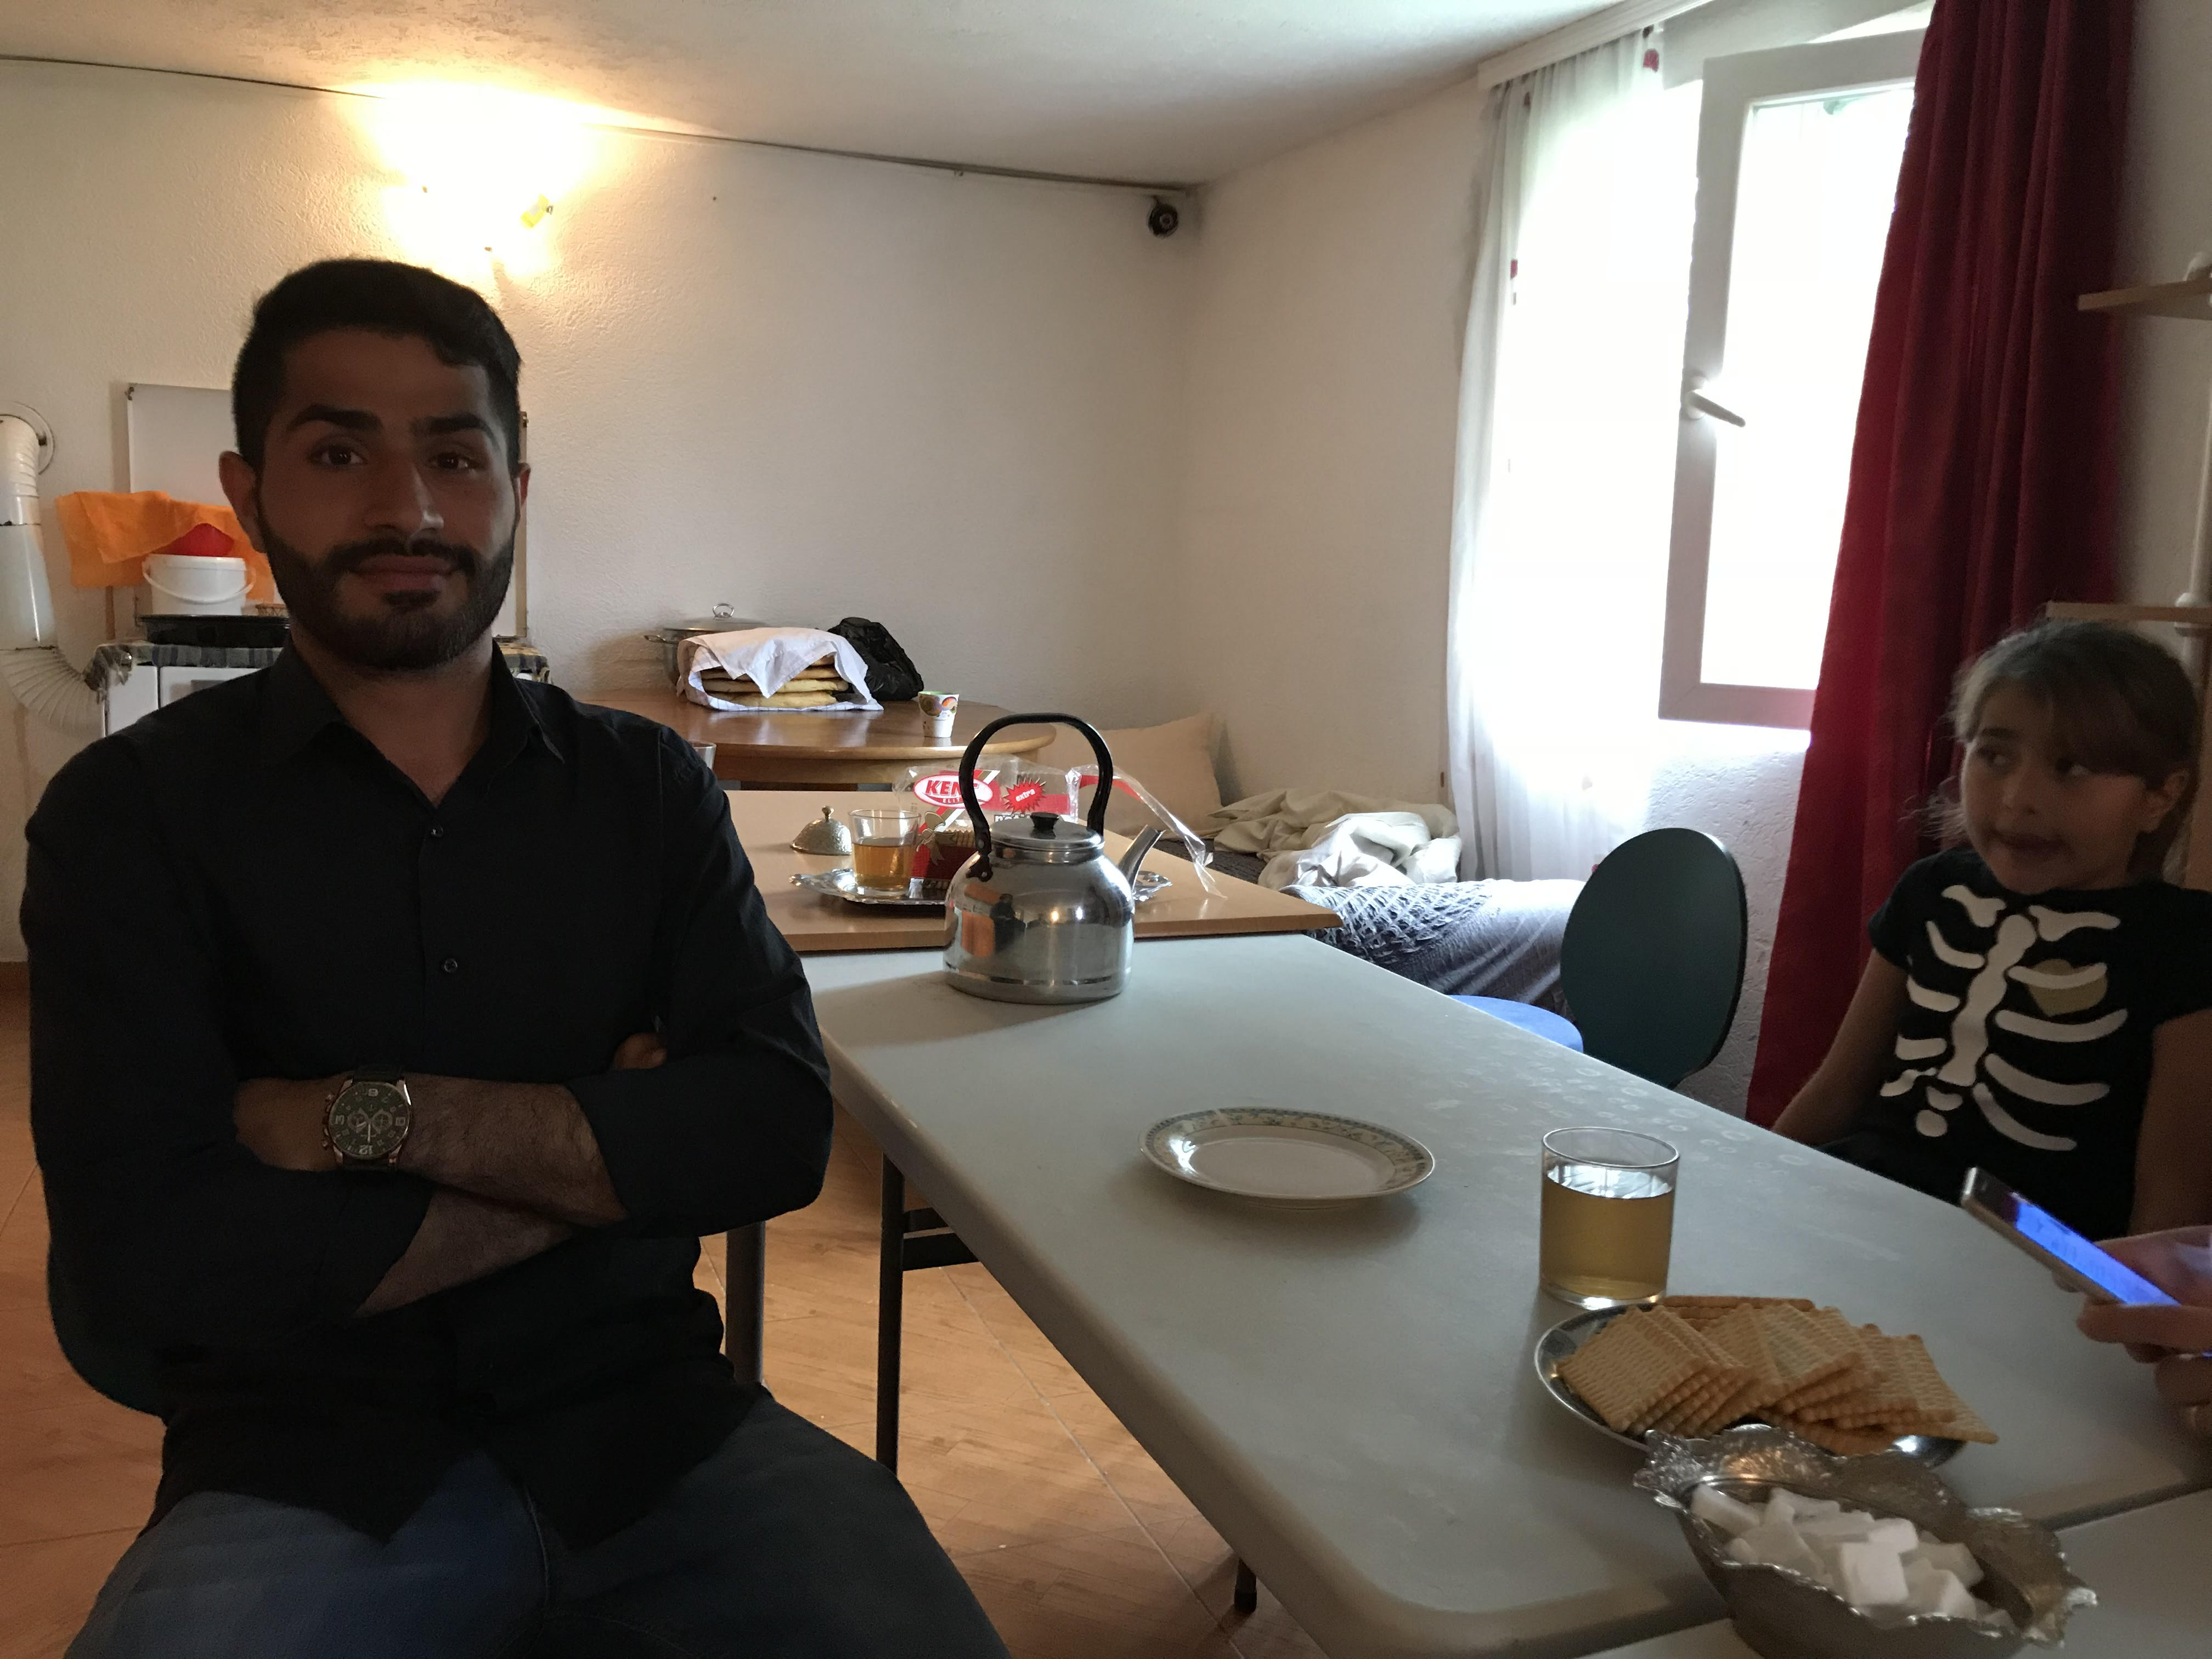 Muhsin Saafi, a refugee from Afghanistan, at an NGO-sponsored safe house in Bihac, Bosnia. He and his family have spent two years trying to reach Germany.